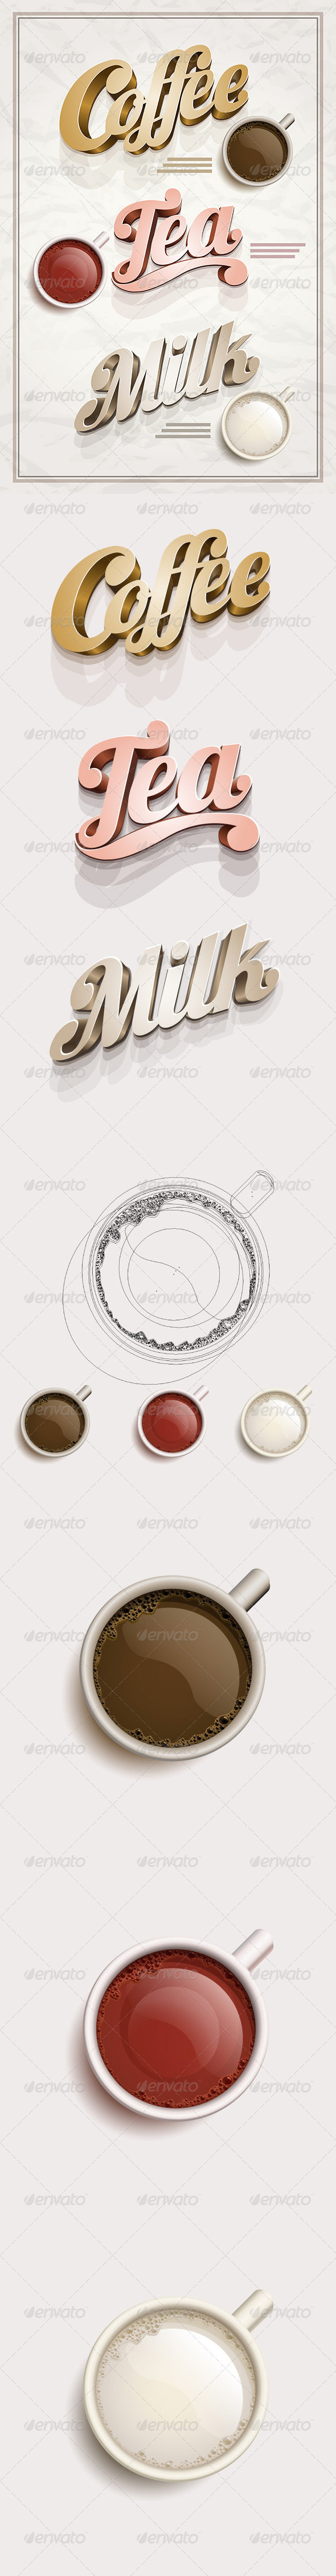 GraphicRiver Coffee Tea and Milk Design Template 3945248